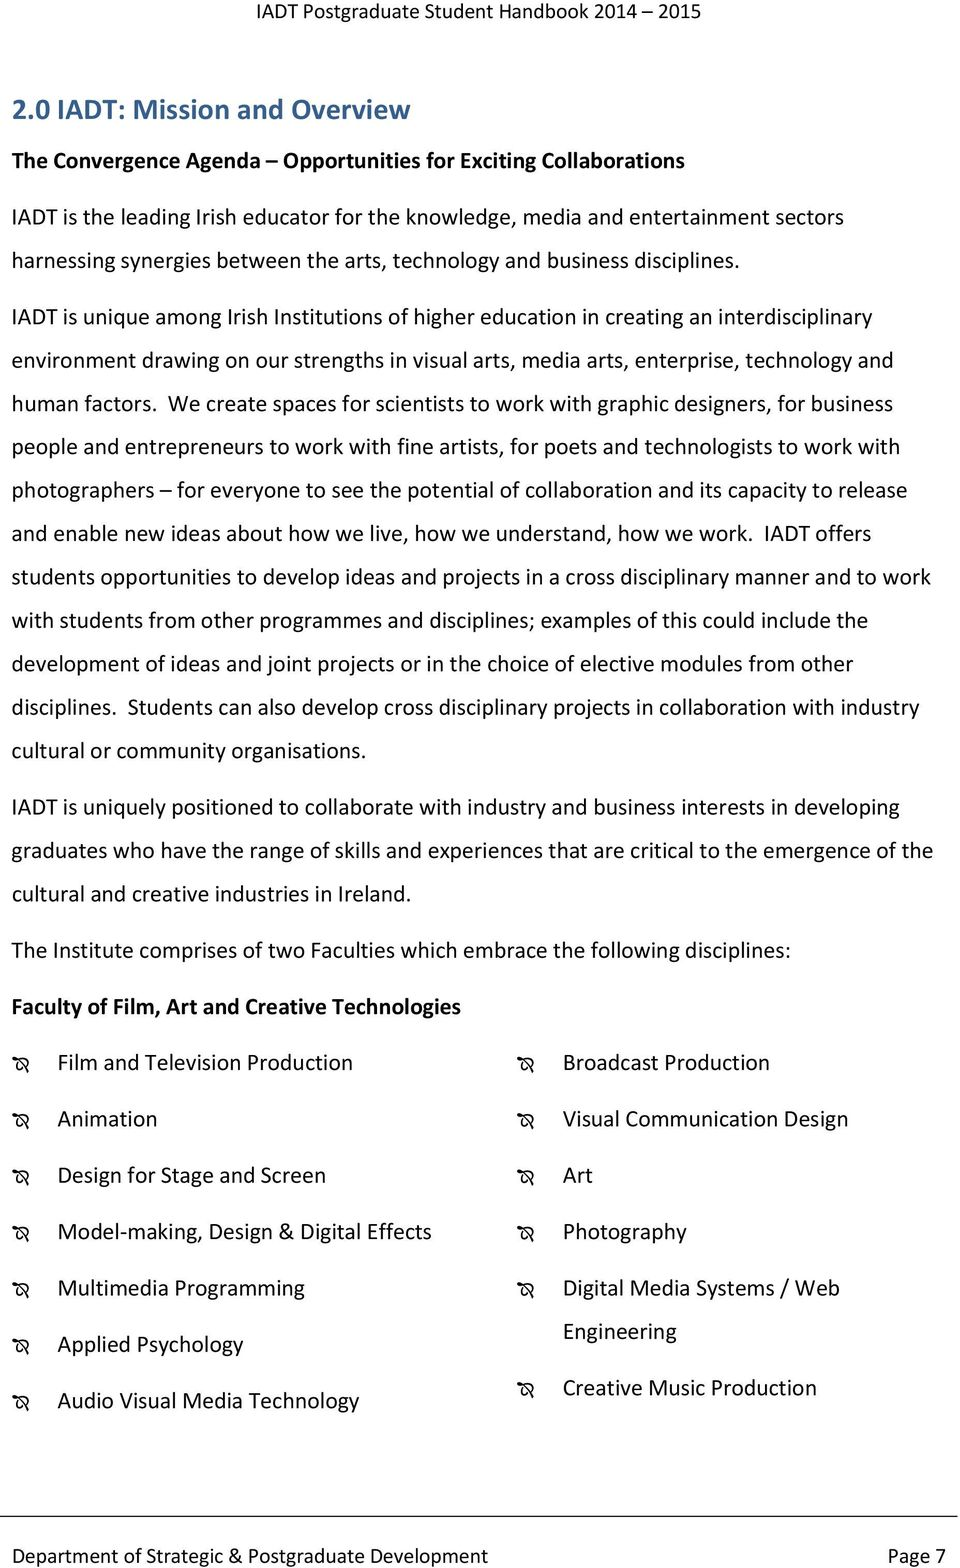 IADT is unique among Irish Institutions of higher education in creating an interdisciplinary environment drawing on our strengths in visual arts, media arts, enterprise, technology and human factors.